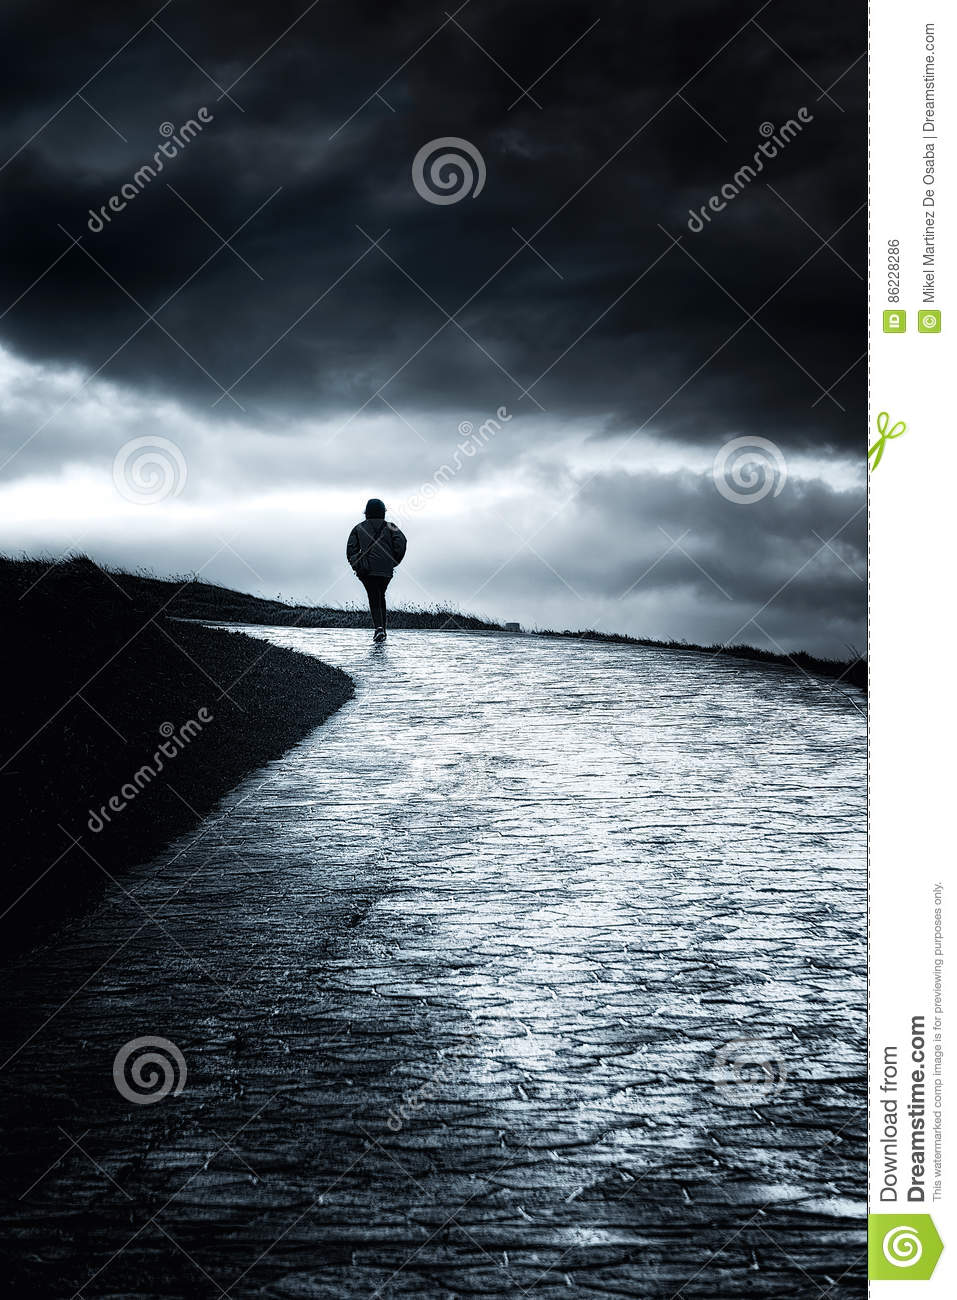 Lonely person walking